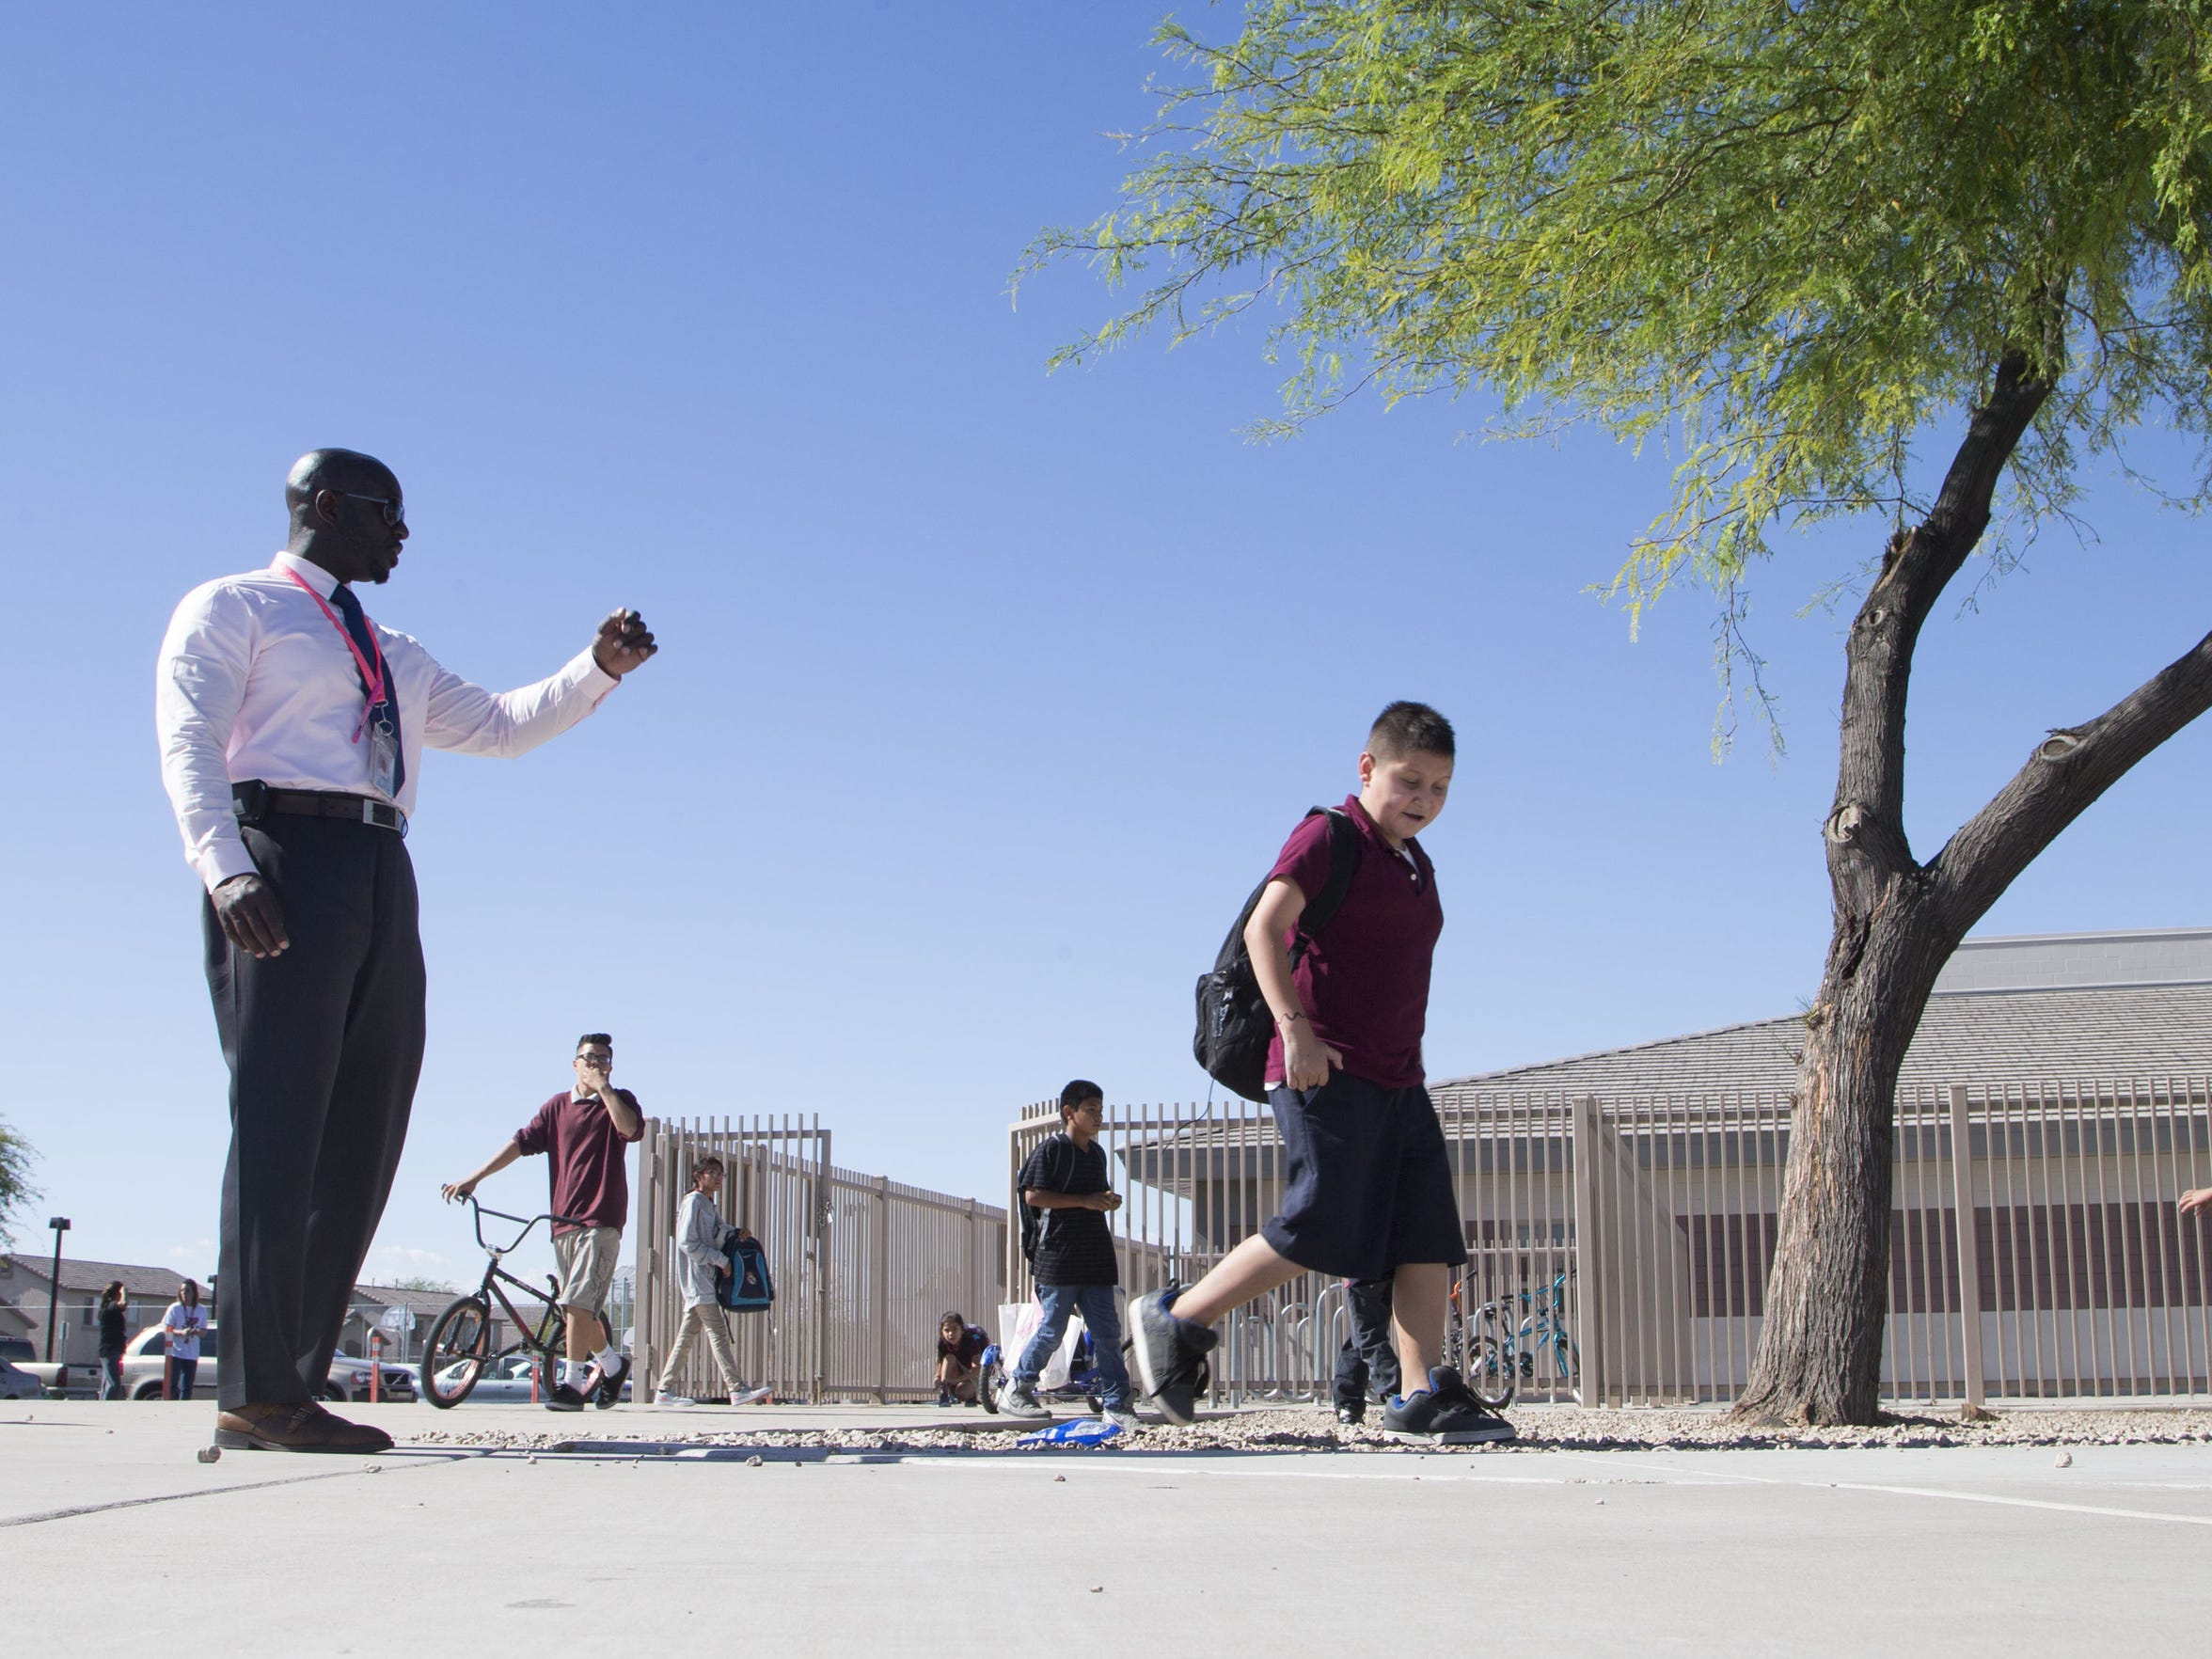 Principal Eric Atuahene keeps an eye on his students as they go home after a school day.